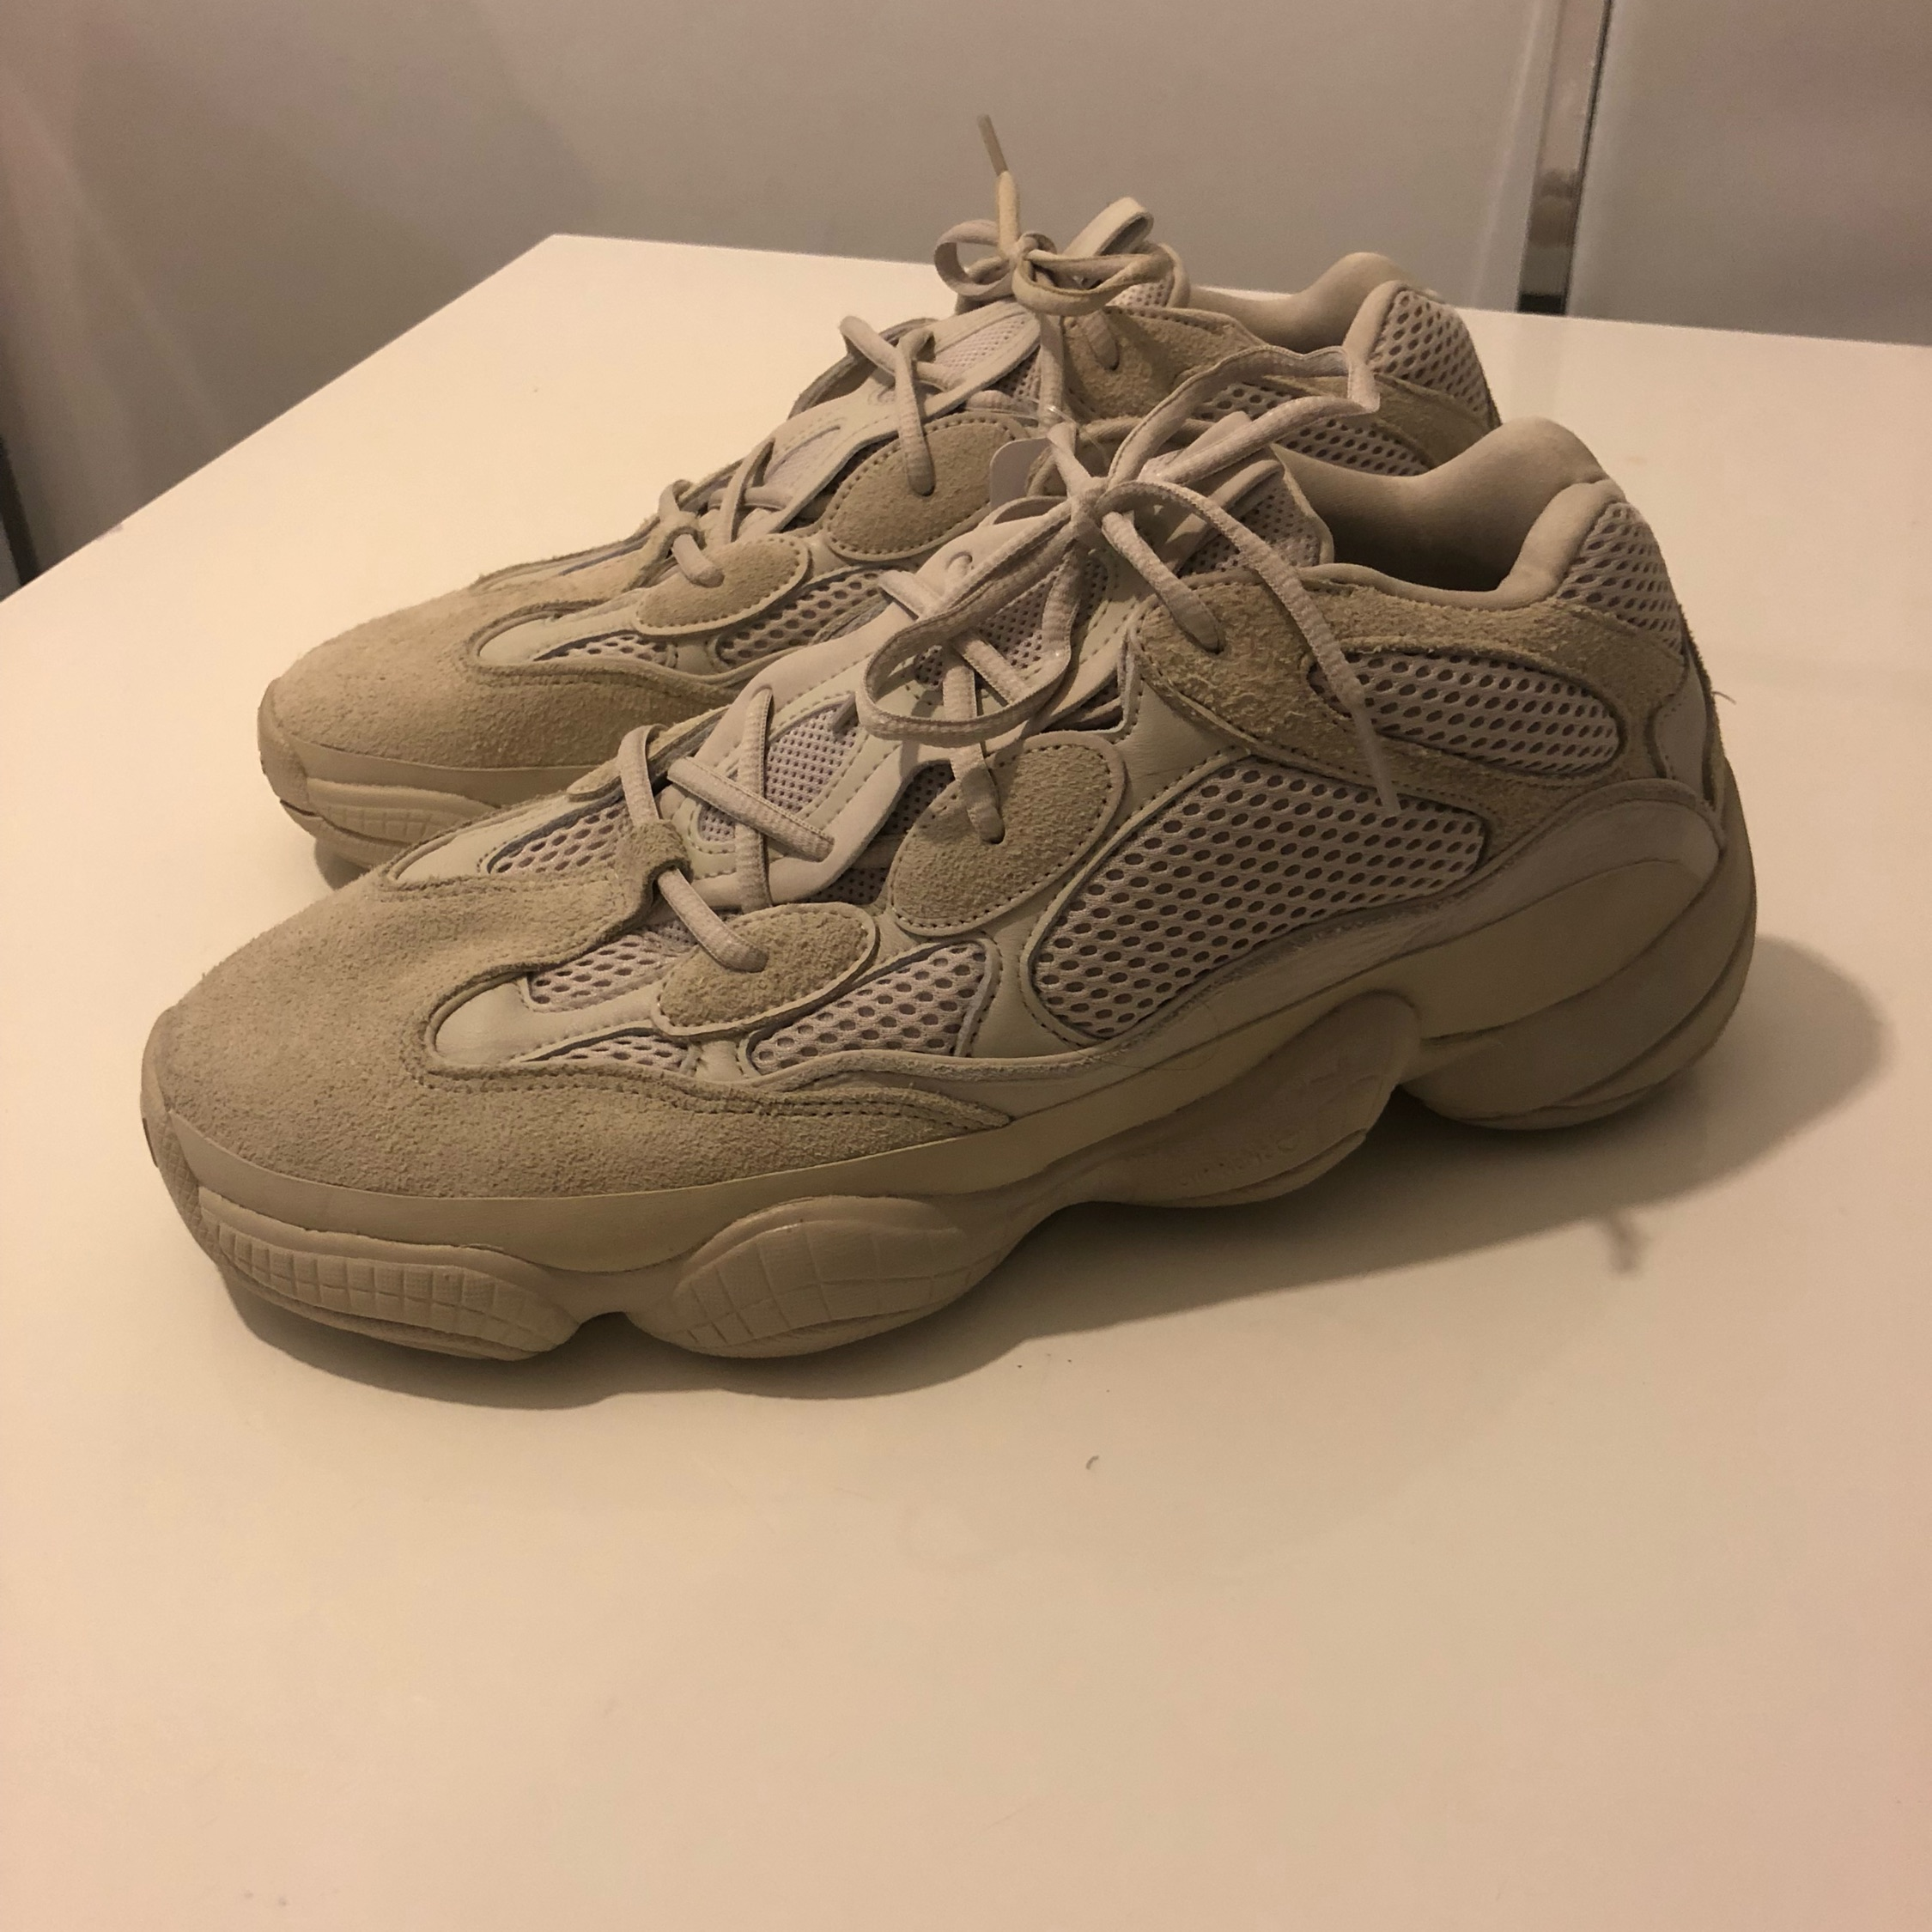 outlet store e1349 cdbf0 Adidas Yeezy 500 - Blush - Size 12.5 Uk